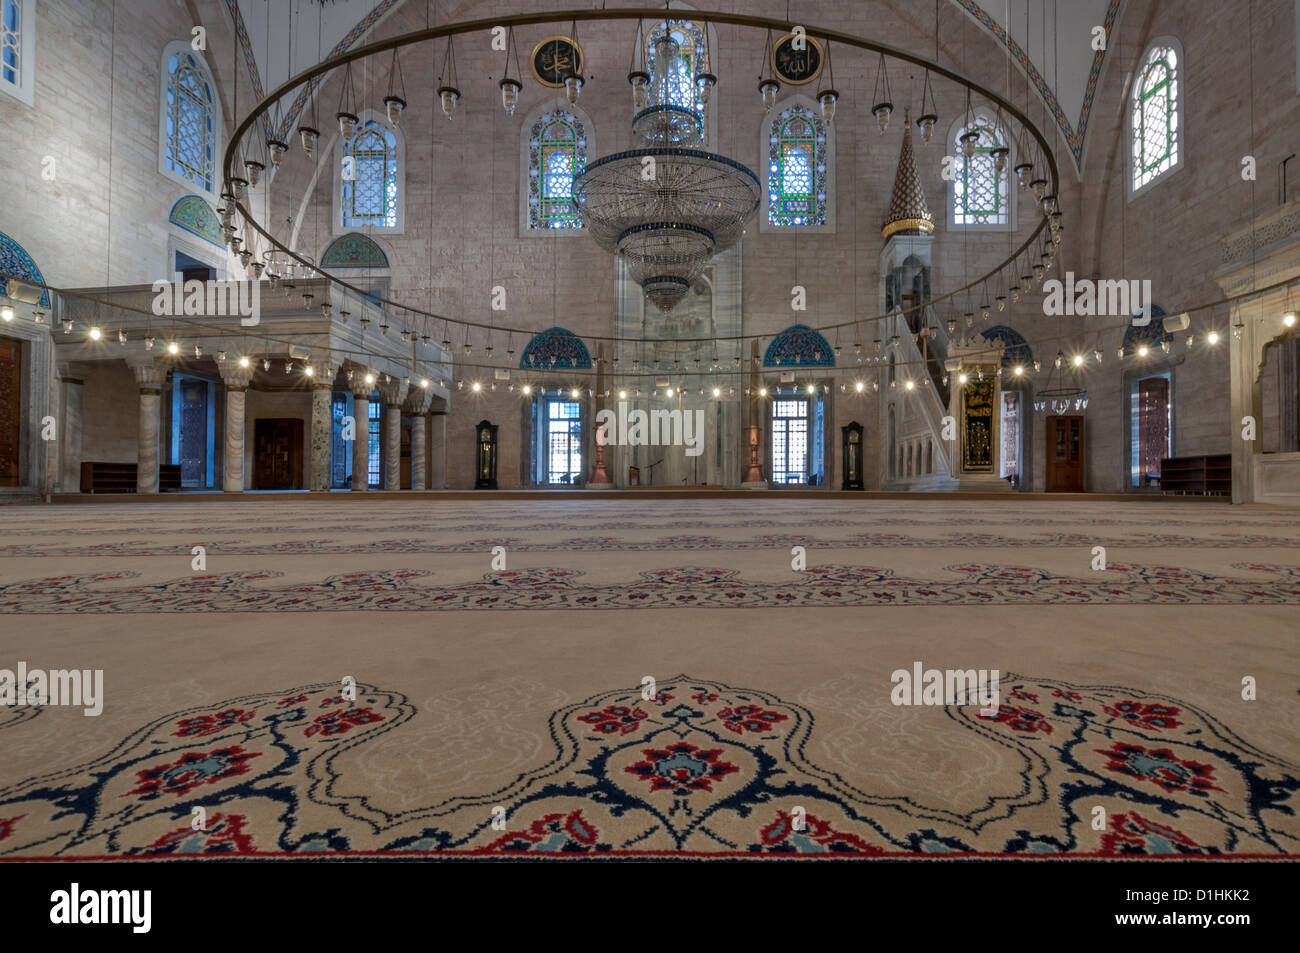 Interior of the yavuz selim mosque in istanbulturkey stock photo interior of the yavuz selim mosque in istanbulturkey thecheapjerseys Images